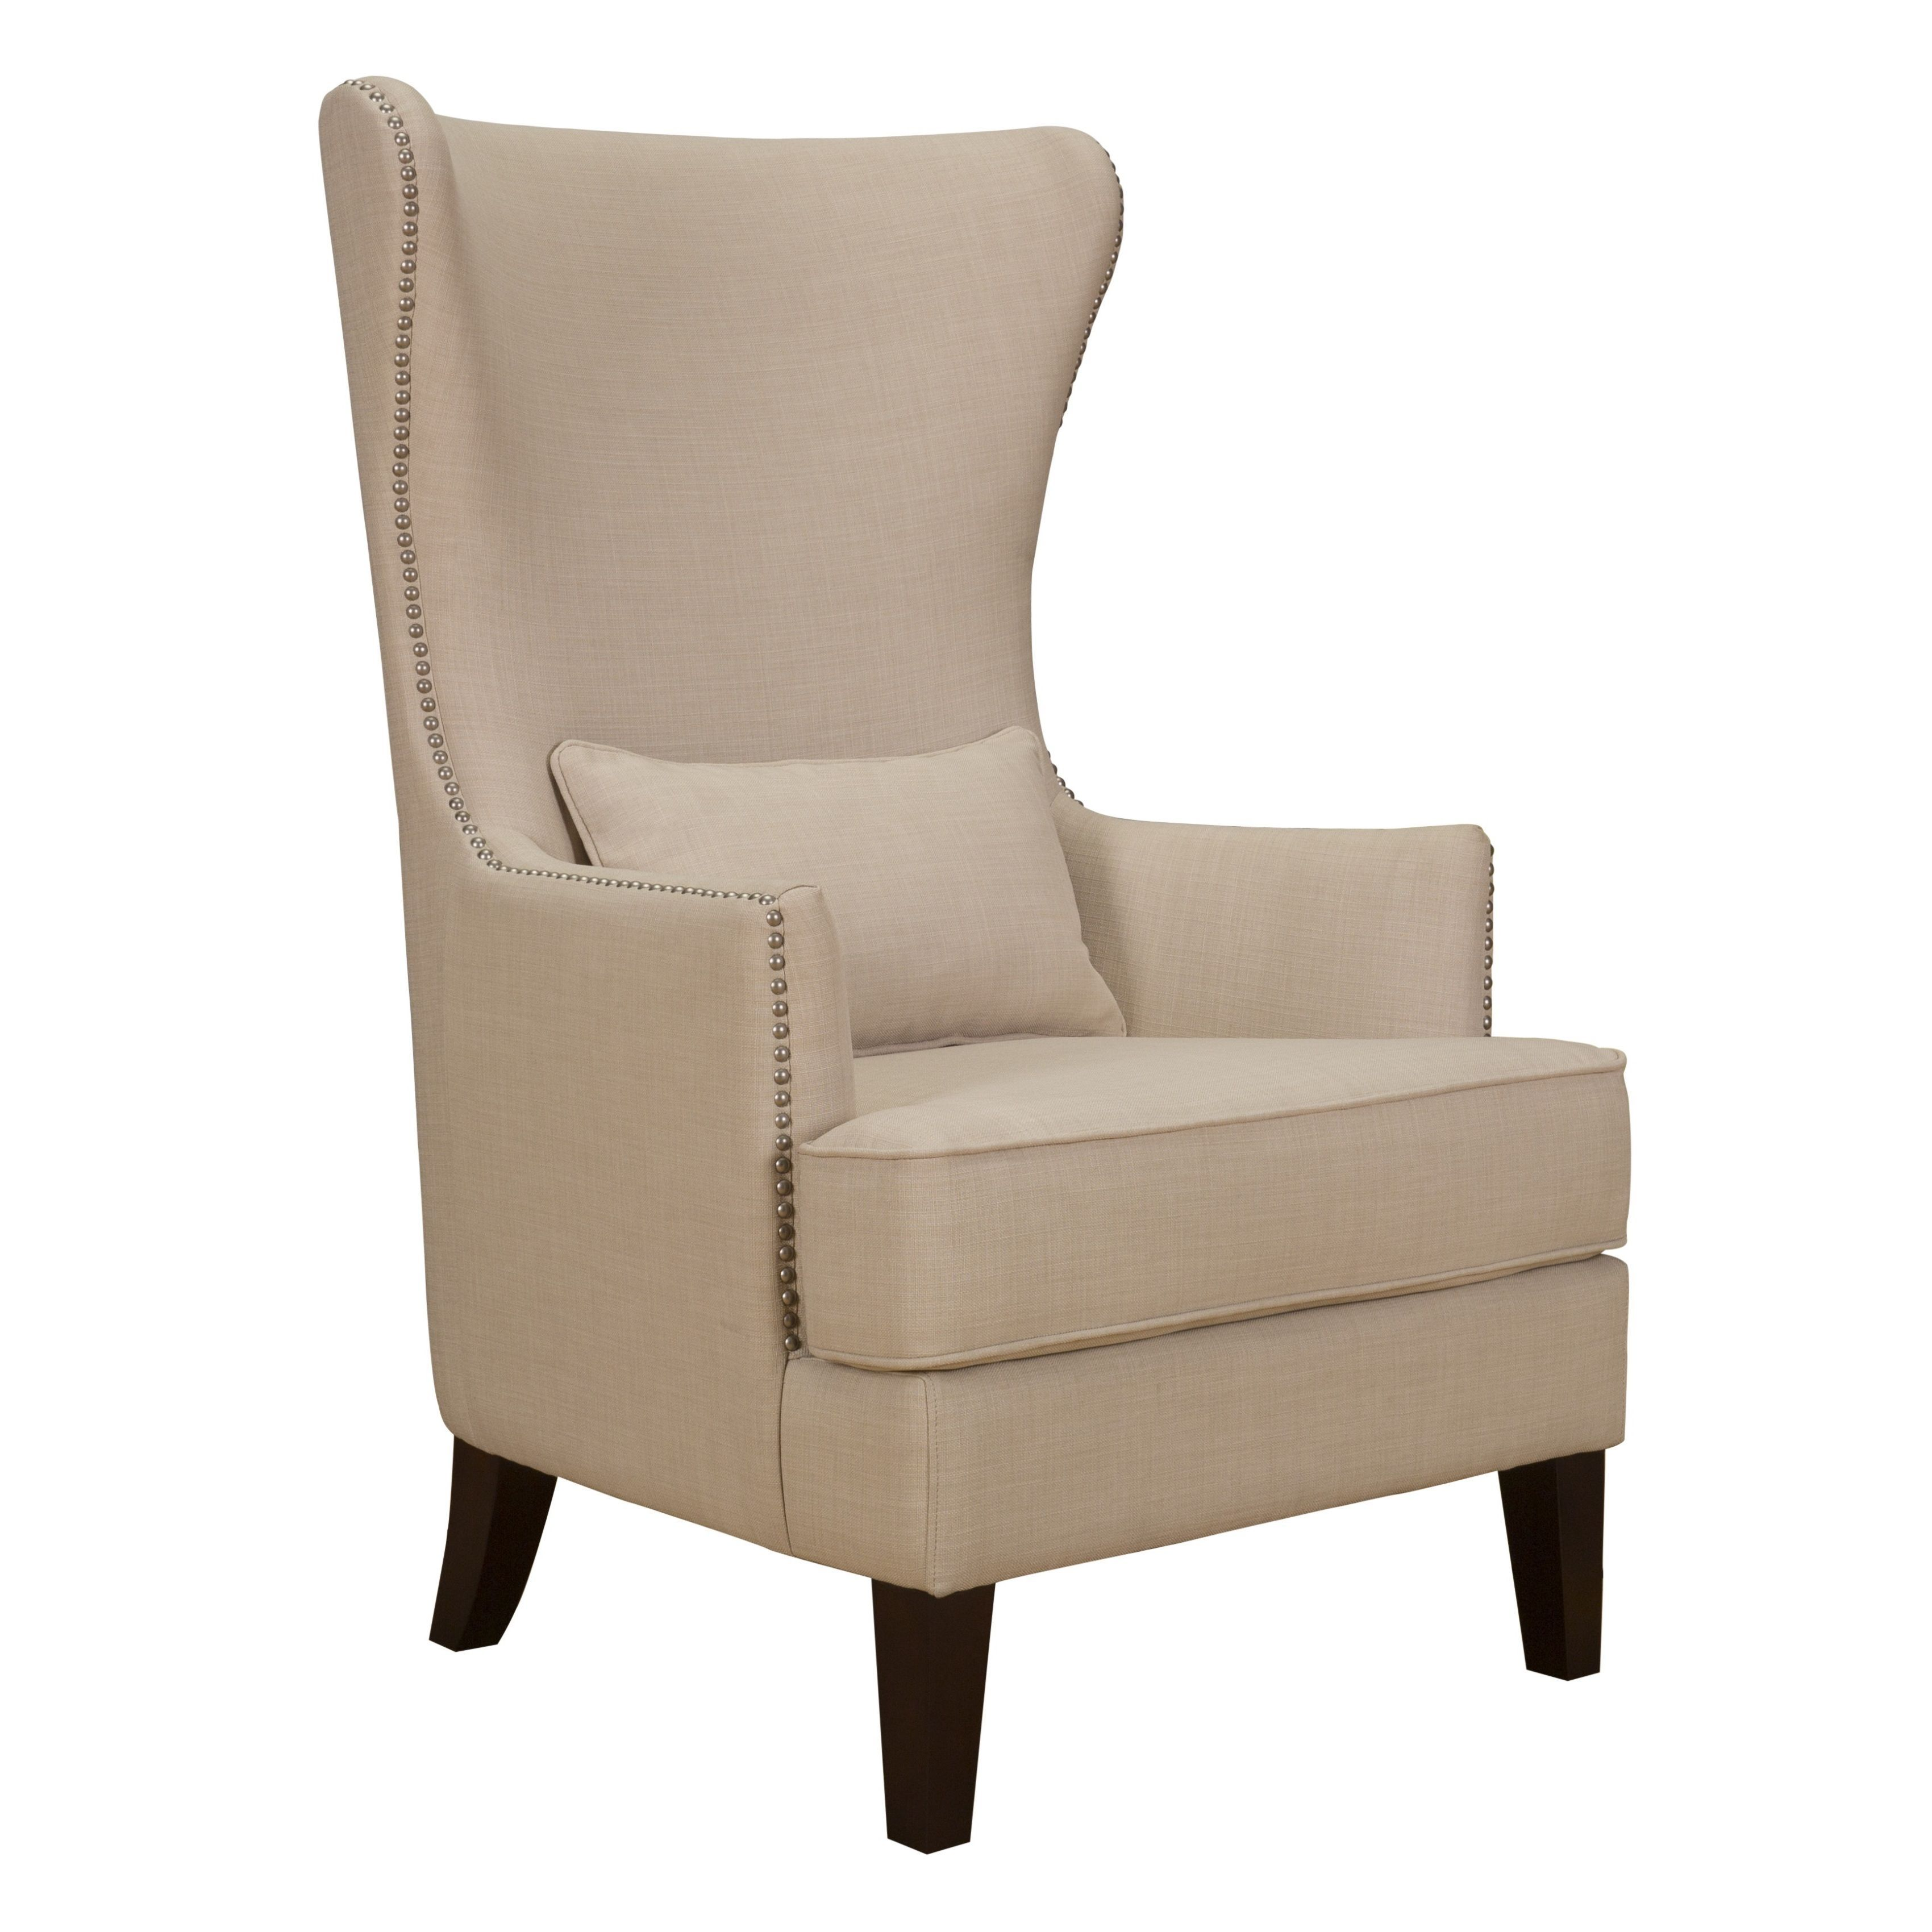 Picket House Kegan Wingback Hierloom Chair Accent Chairs Upholstered Chairs Furniture